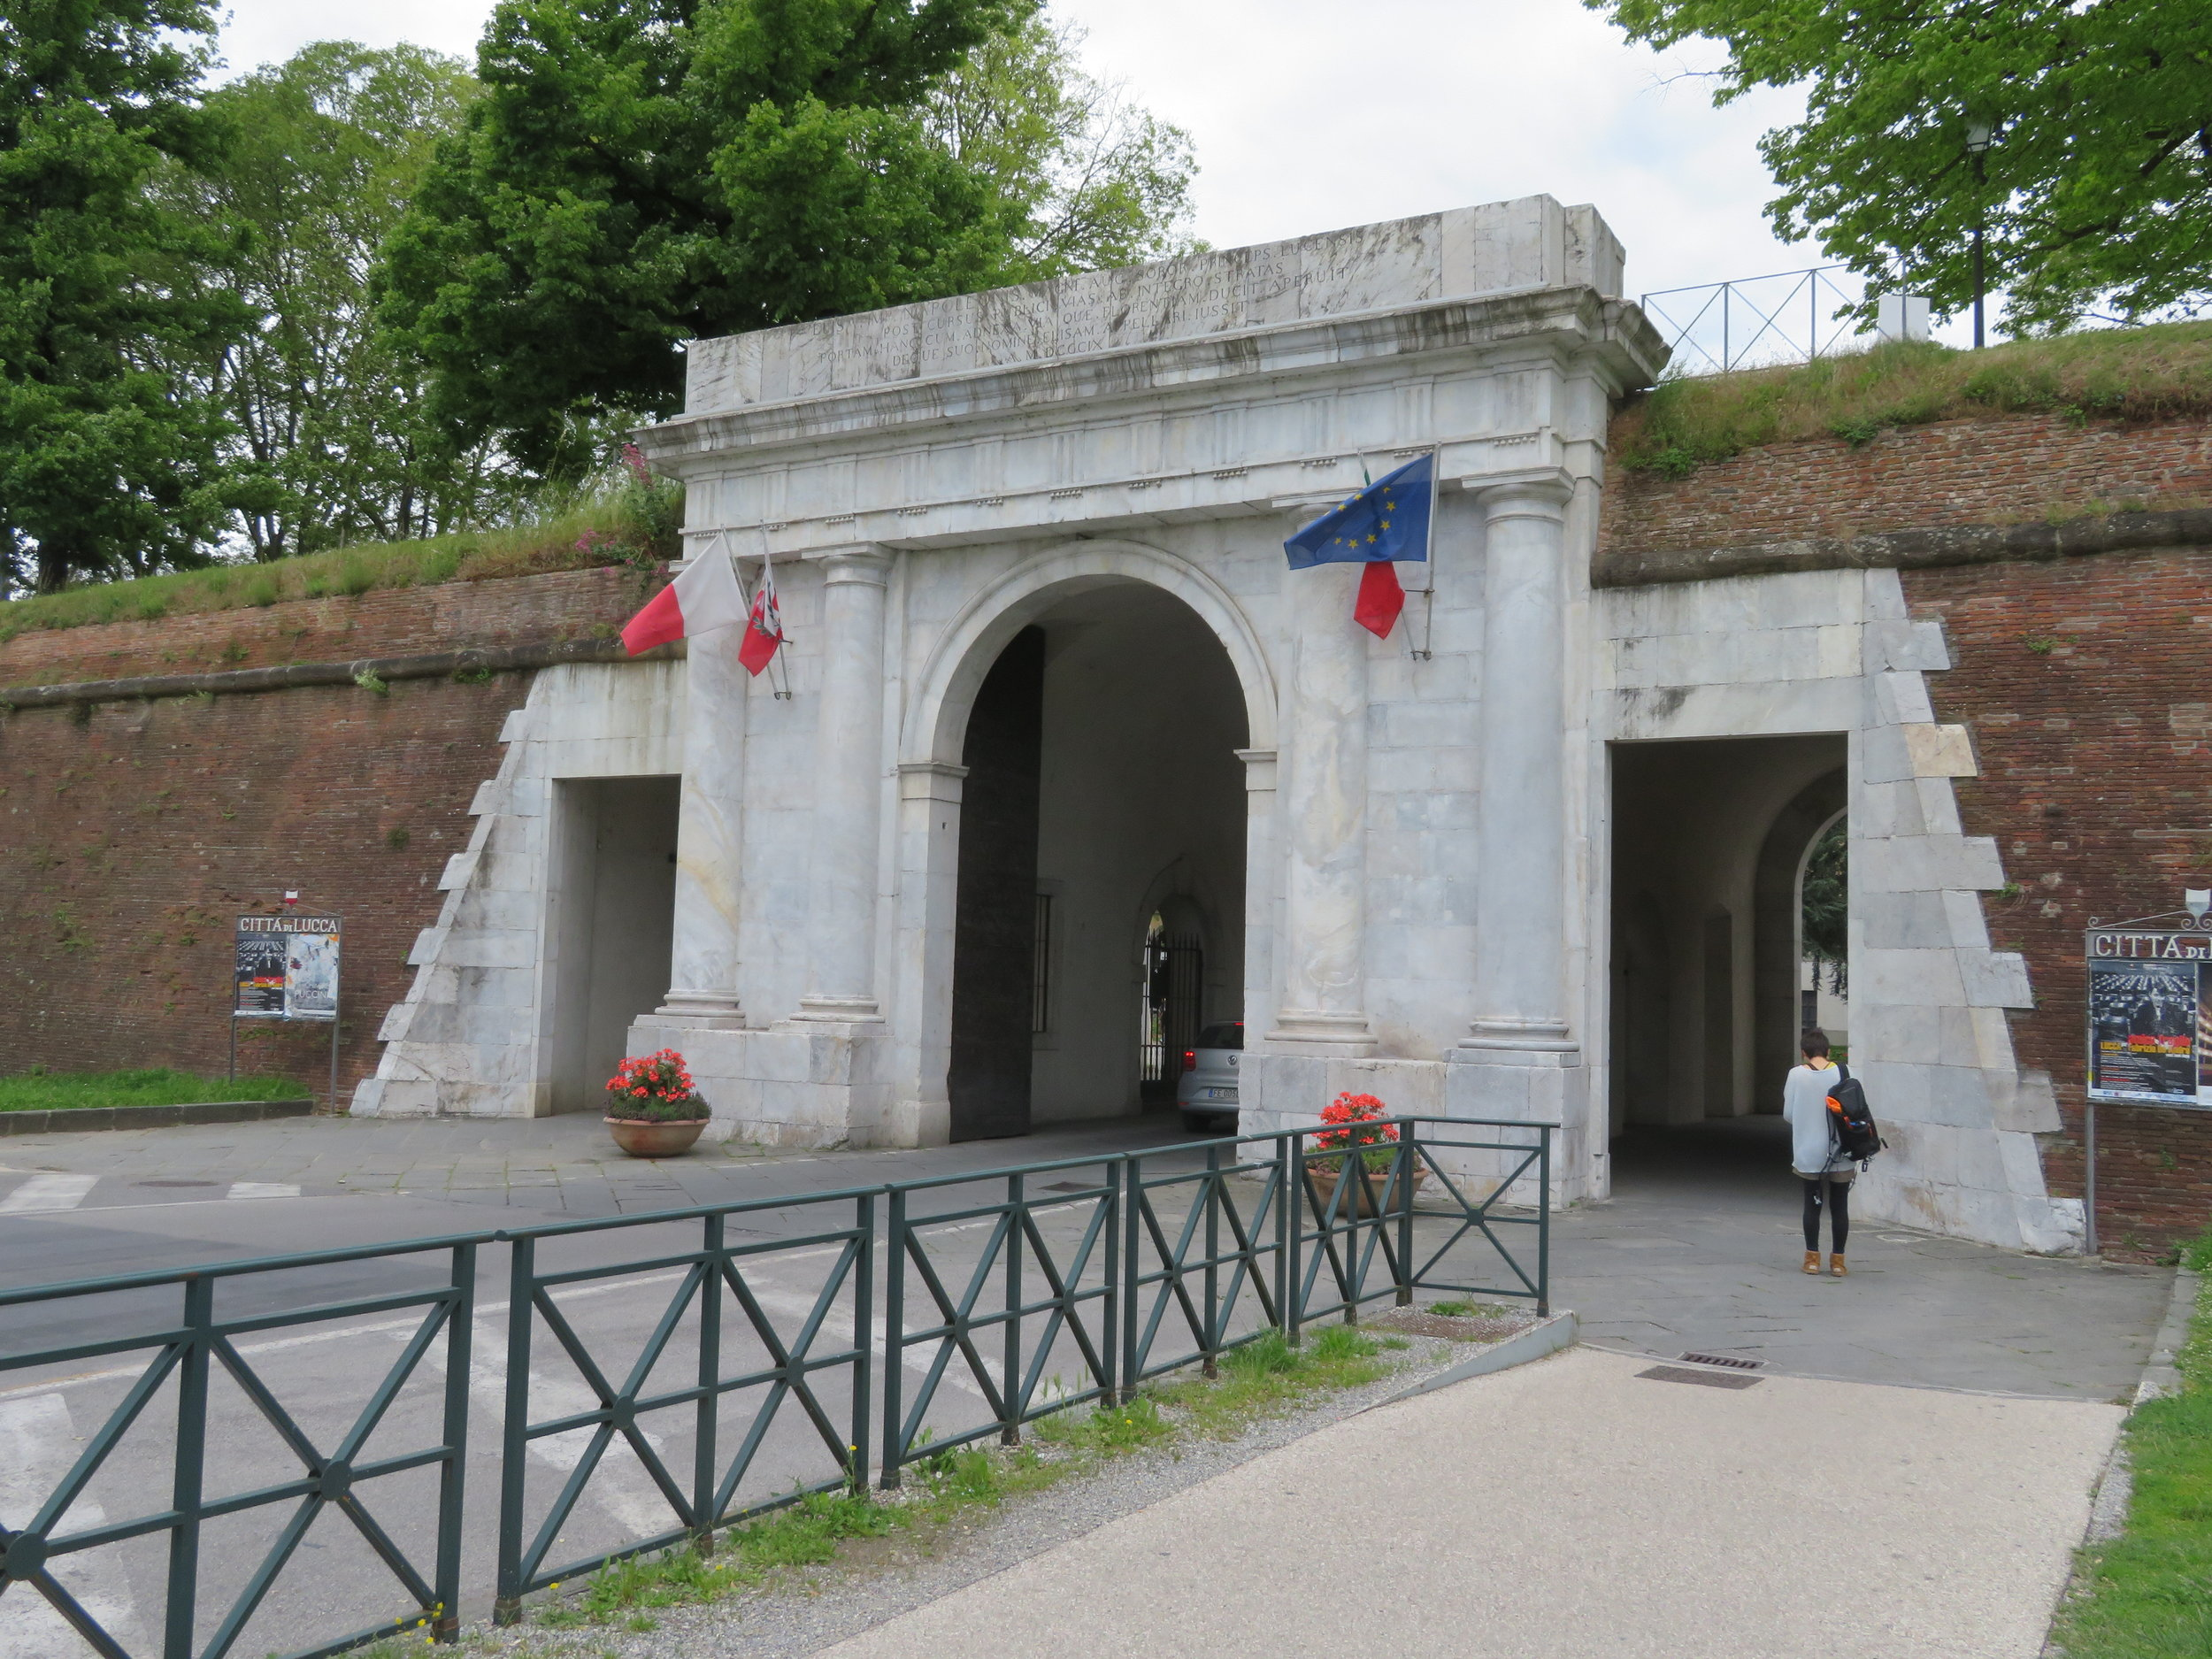 Porta Elisa, one of several entrances to the walled city of Lucca.